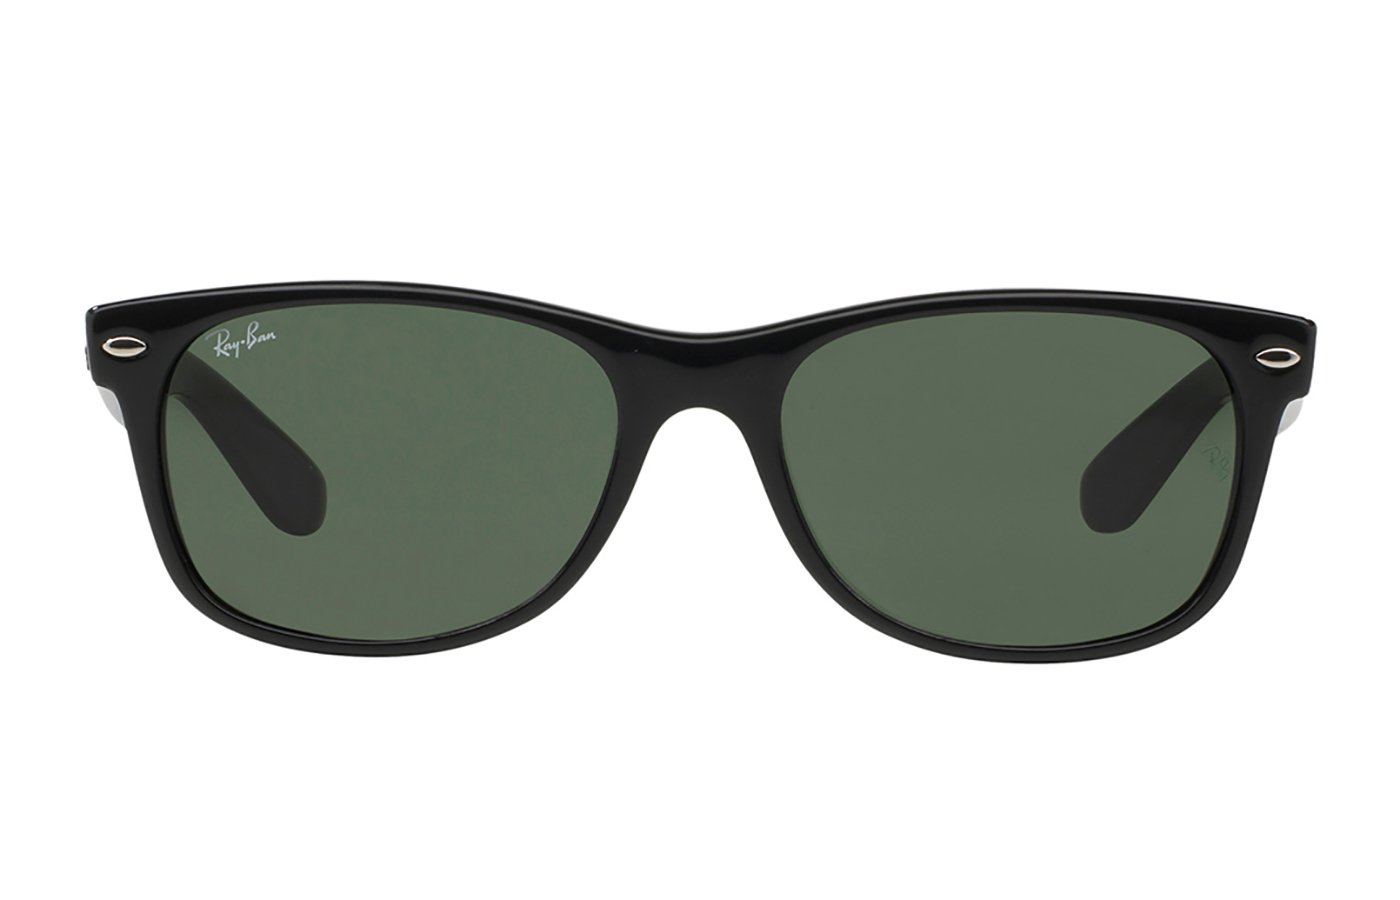 RAY-BAN NEW WAYFARER 0RB2132 52 901 BLACK